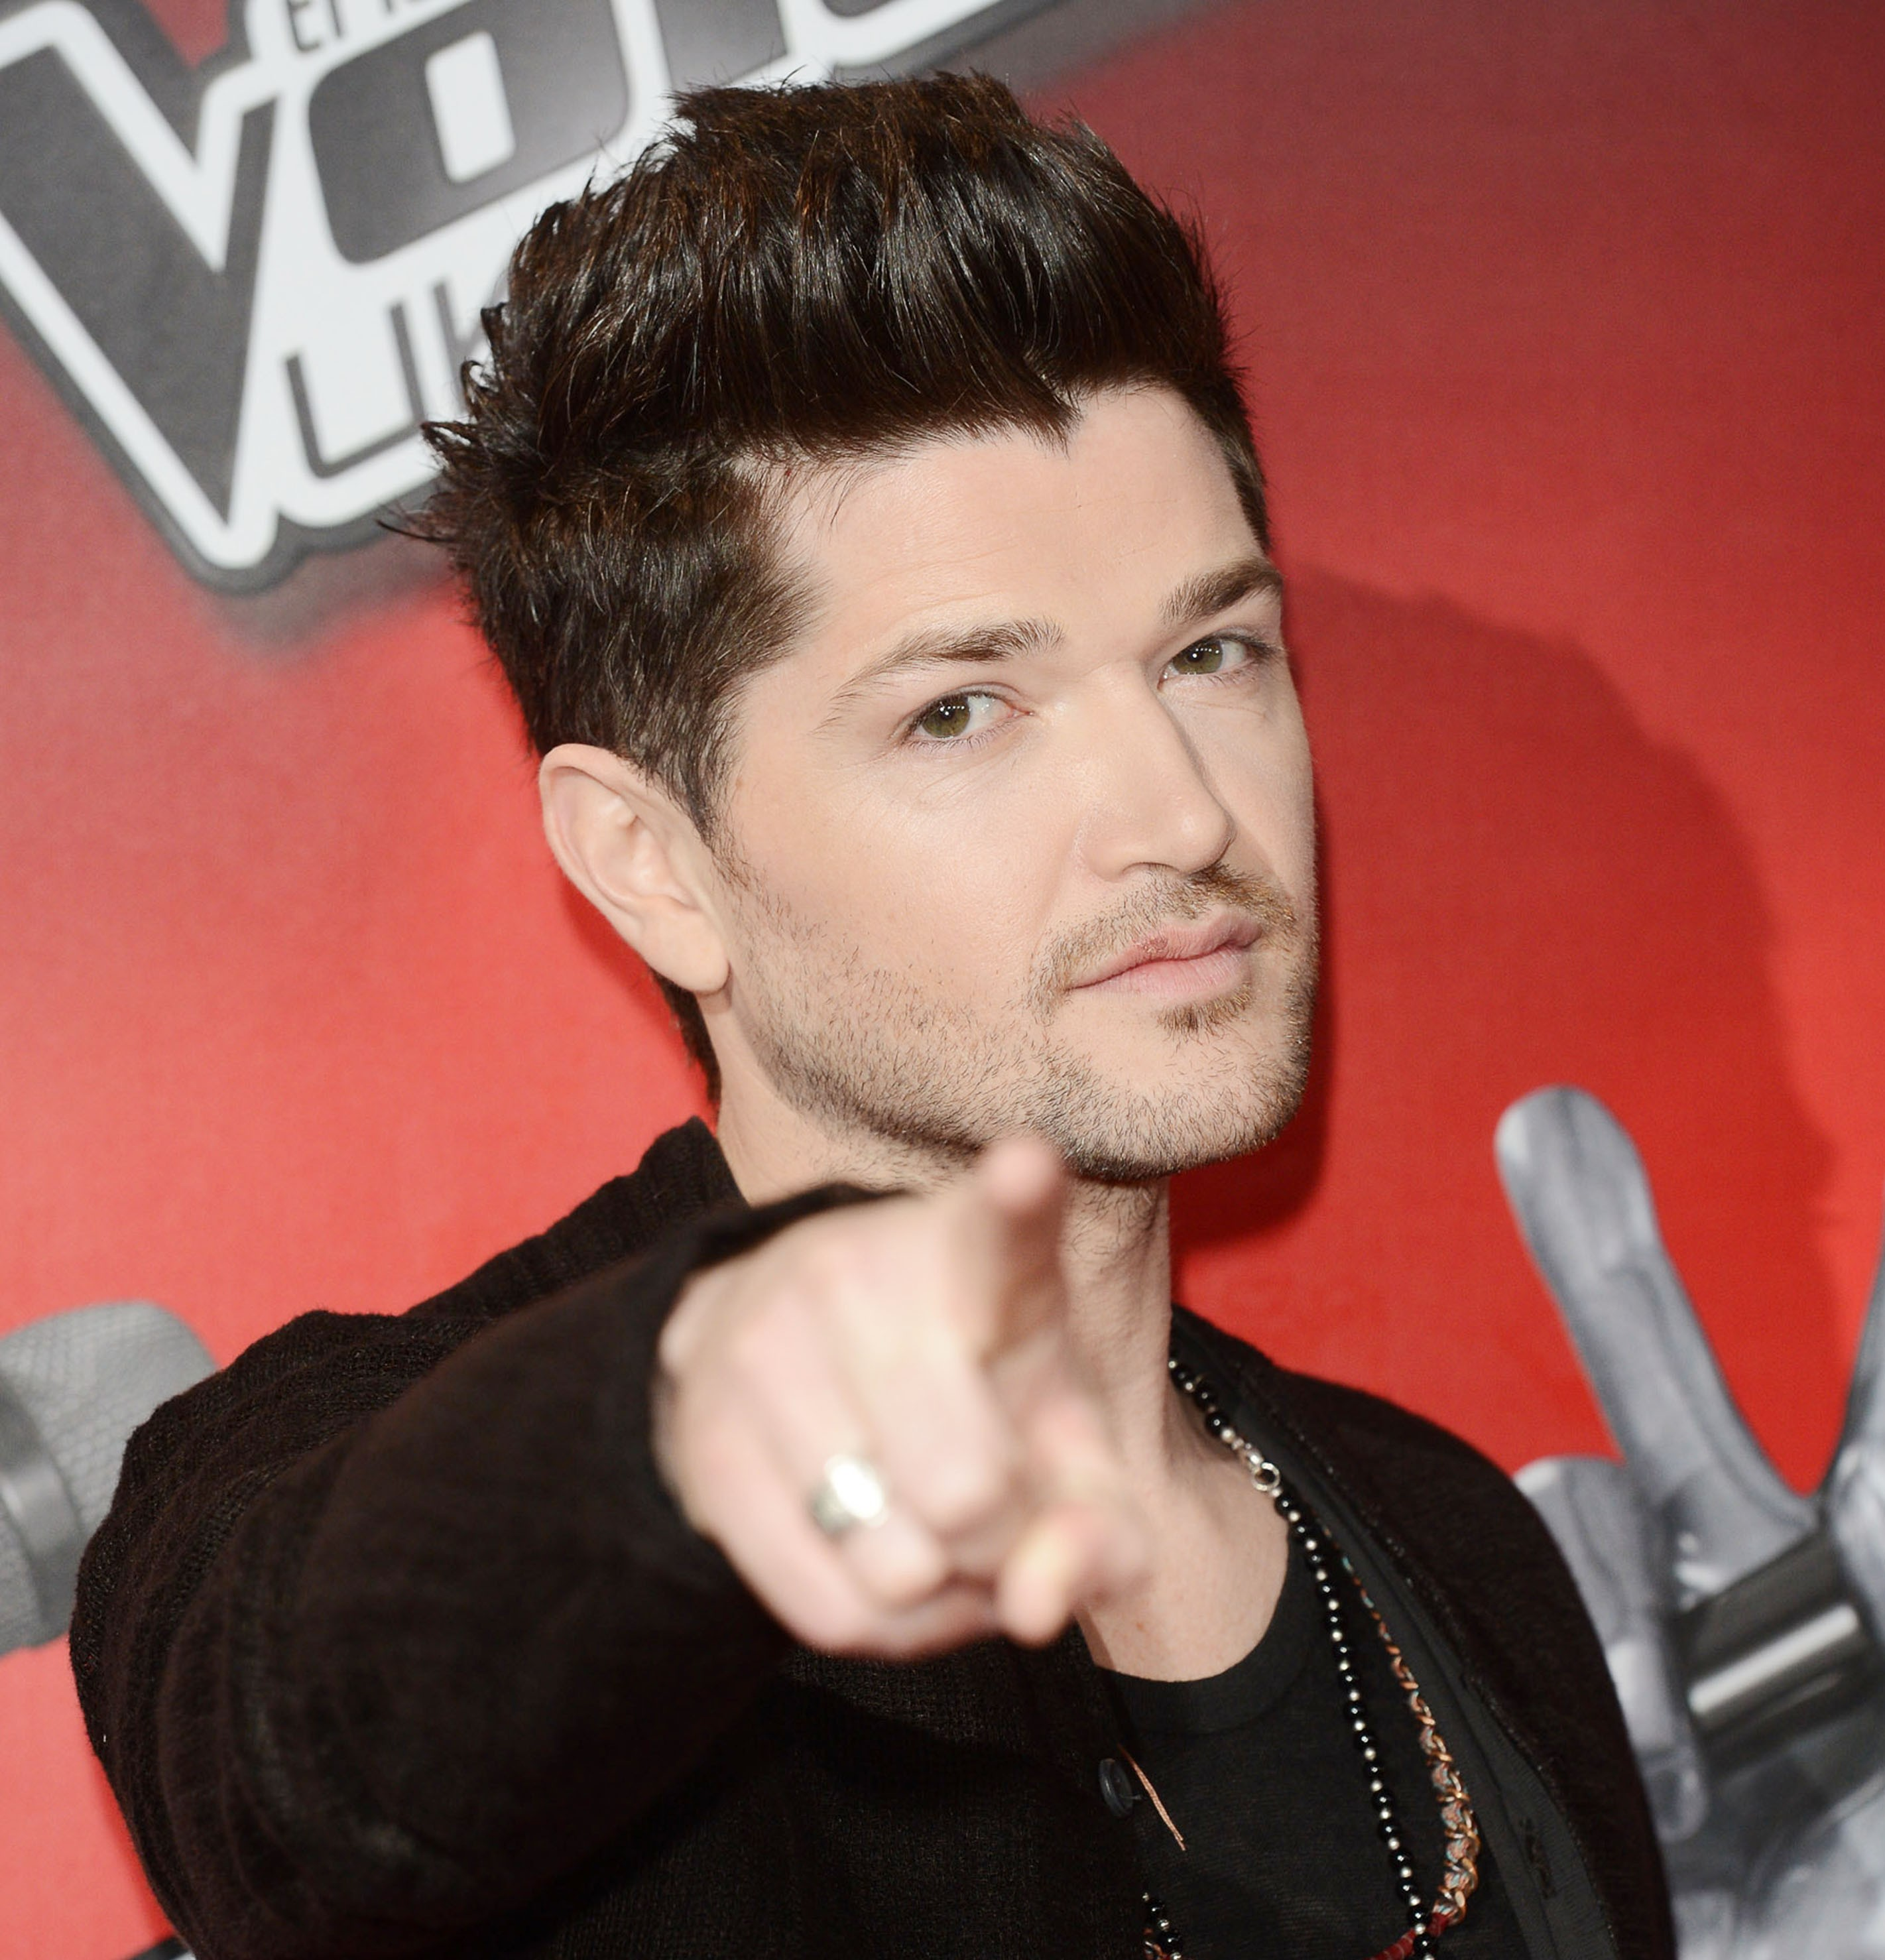 Another one bites the dust: Danny O'Donoghue confirms he has quit The Voice